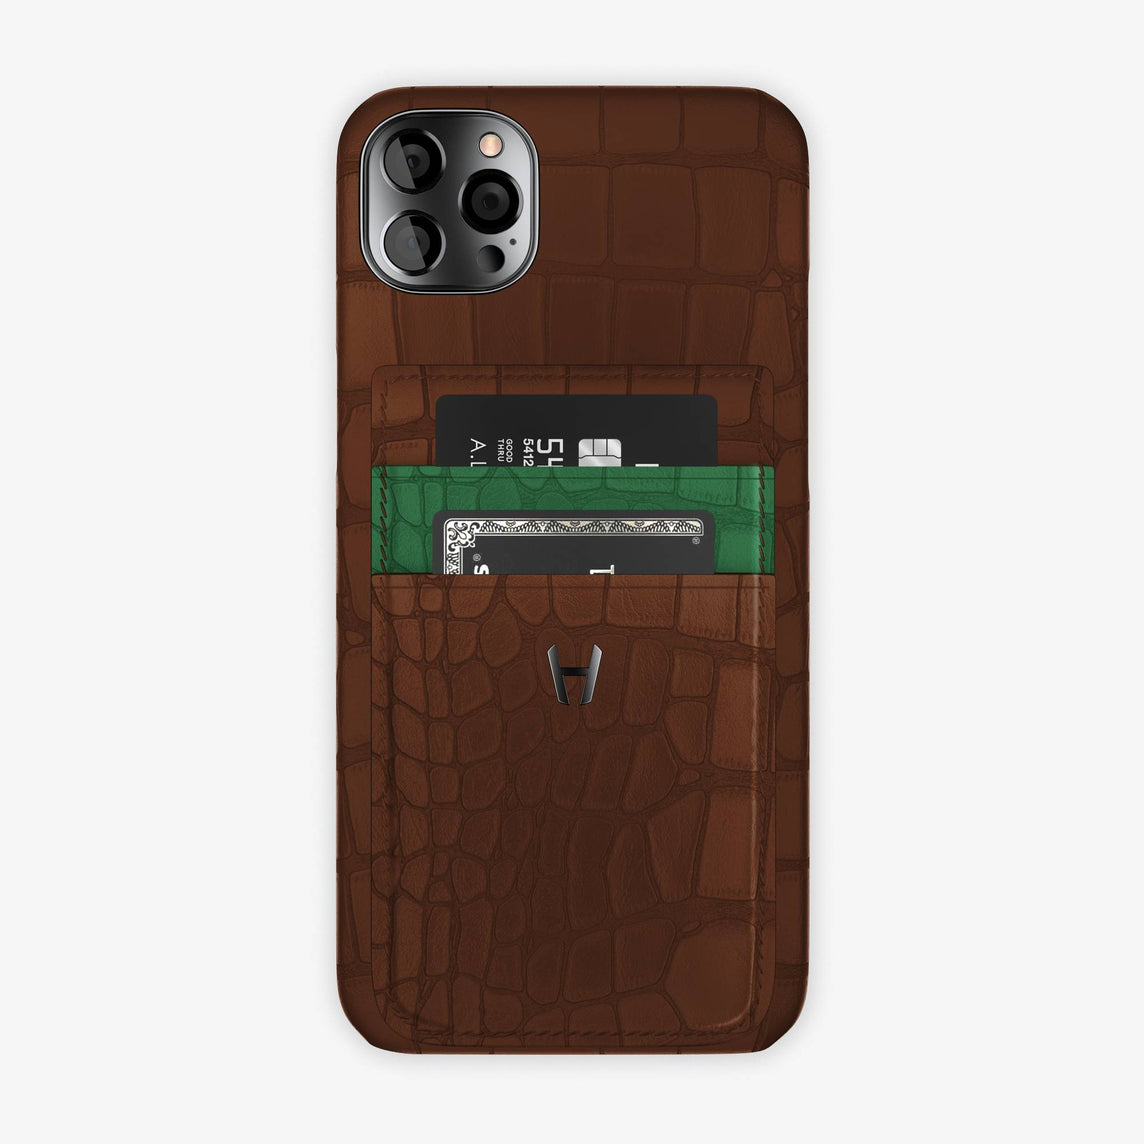 iPhone 12 Pro Max | Brown/Green Emerald - Black